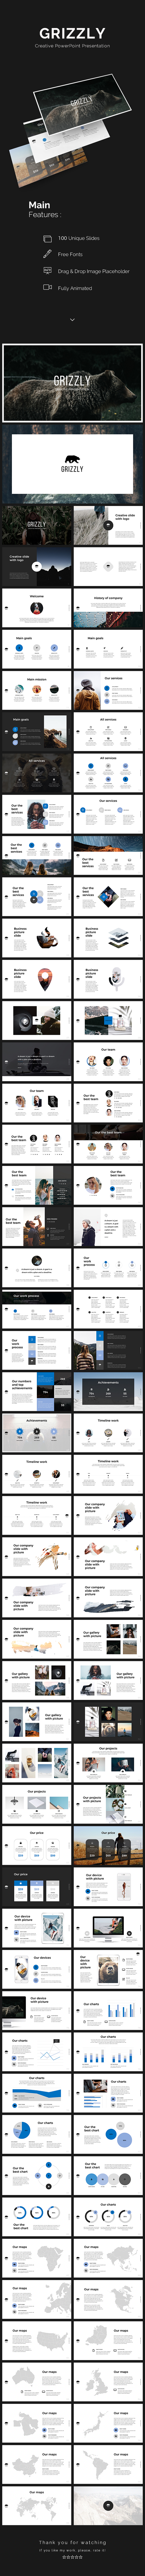 Grizzly PowerPoint Template - PowerPoint Templates Presentation Templates